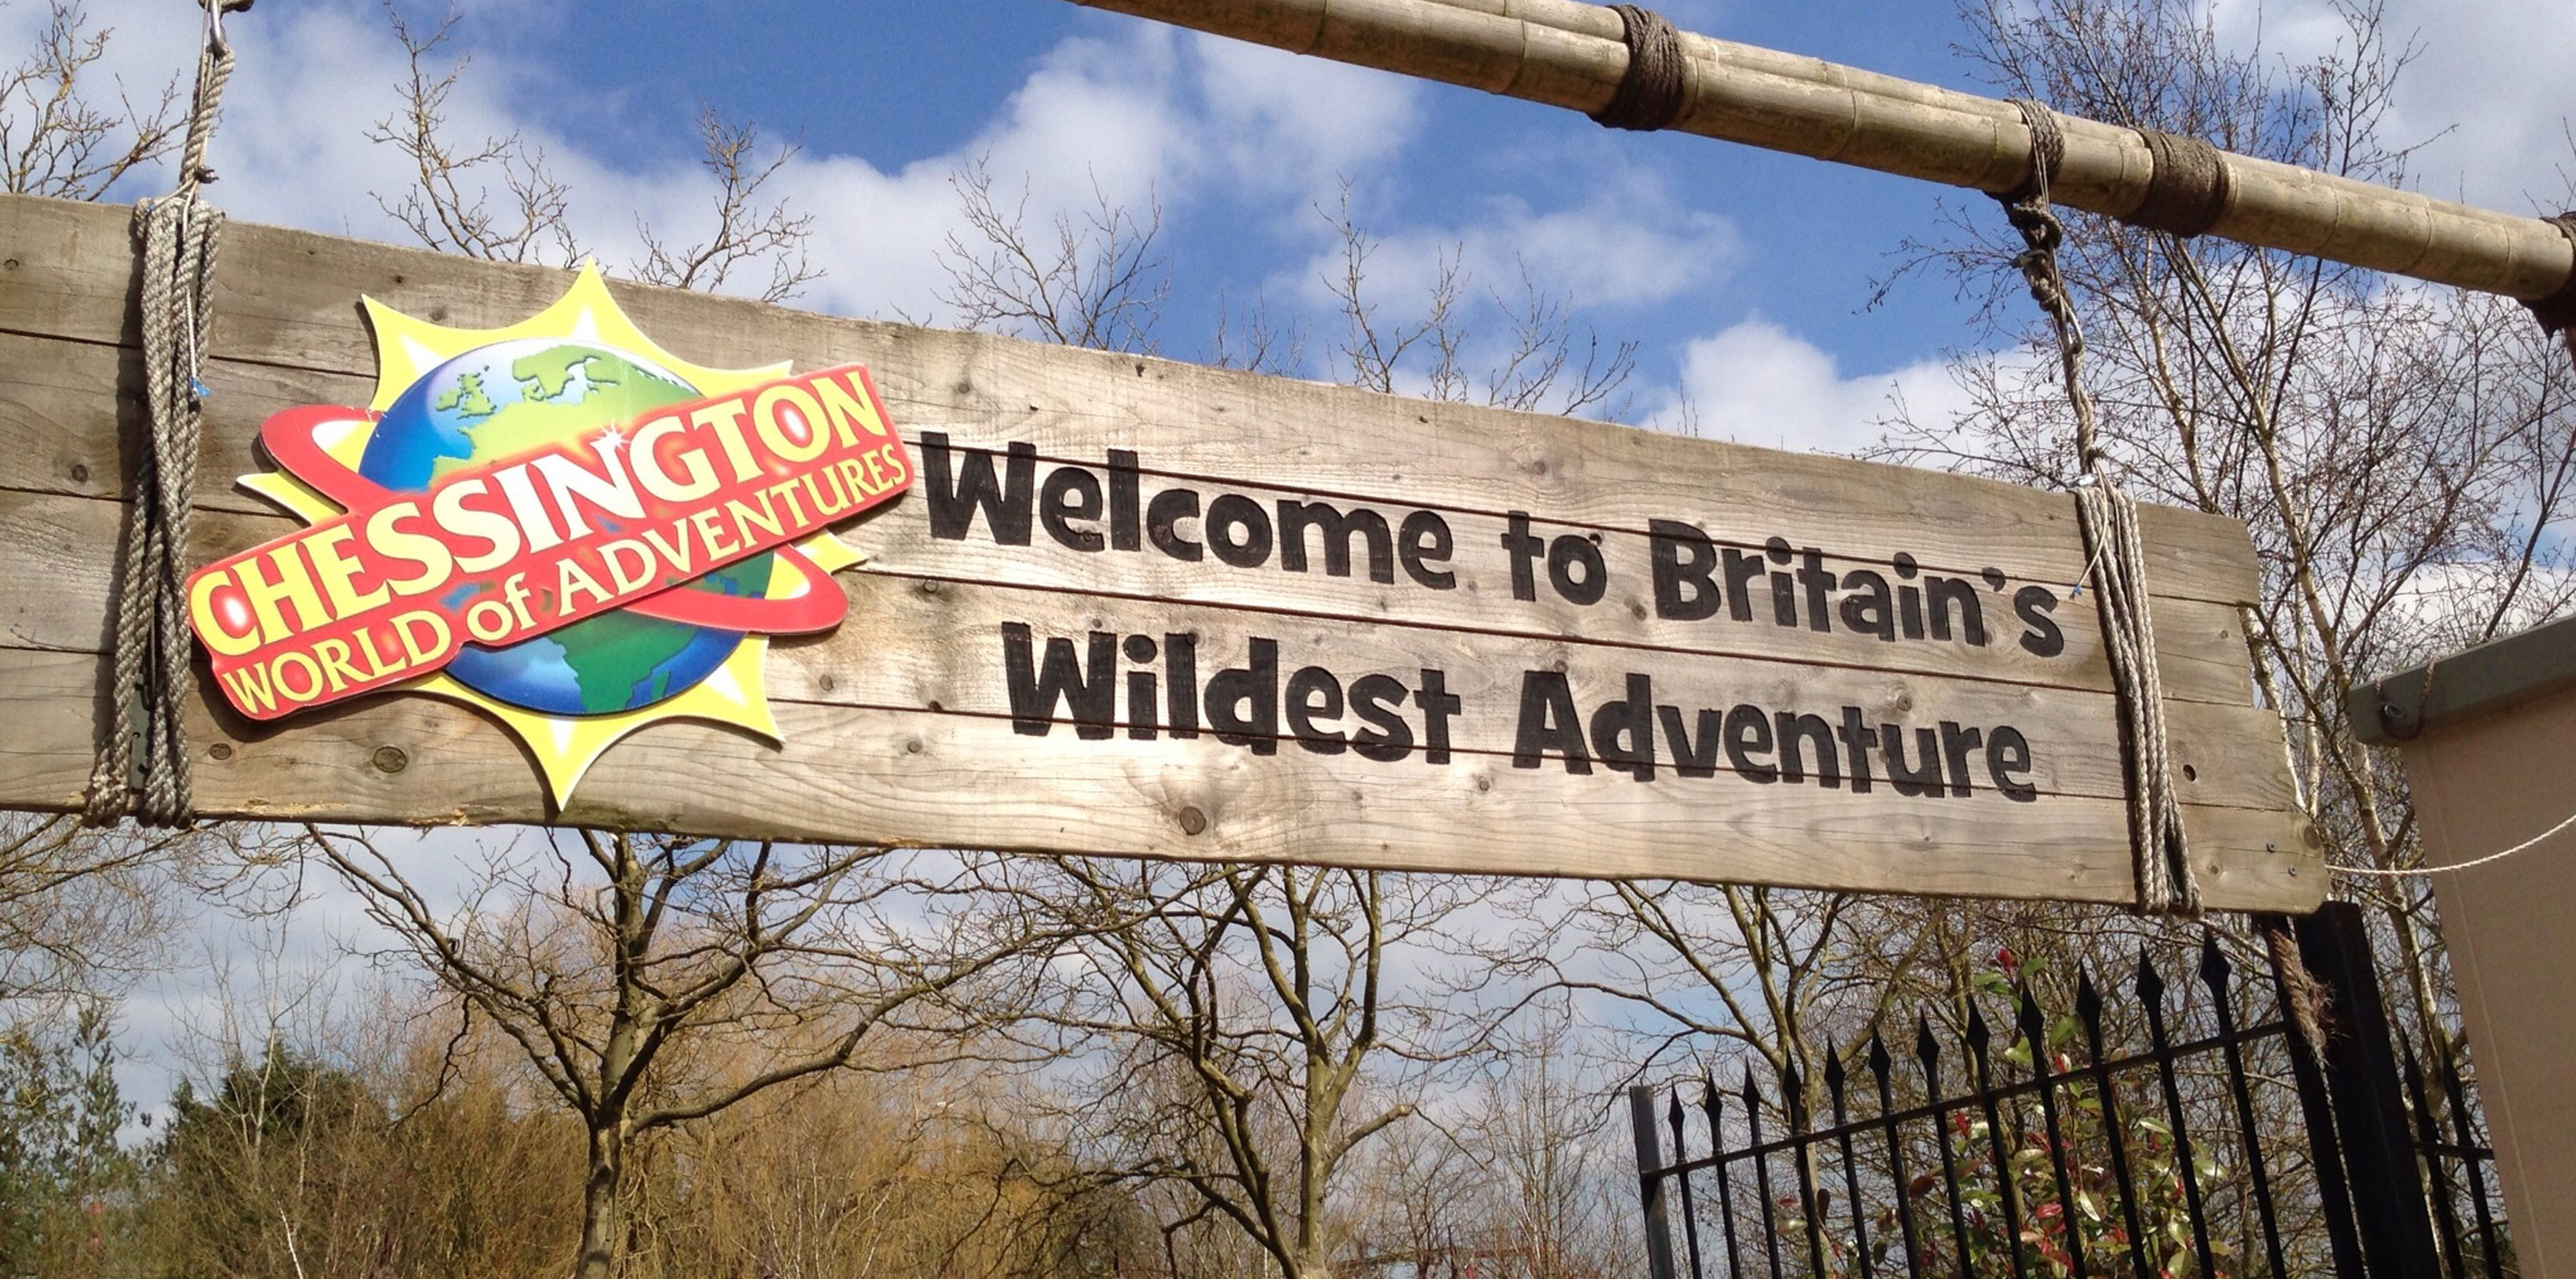 chessington-world-of-adventures